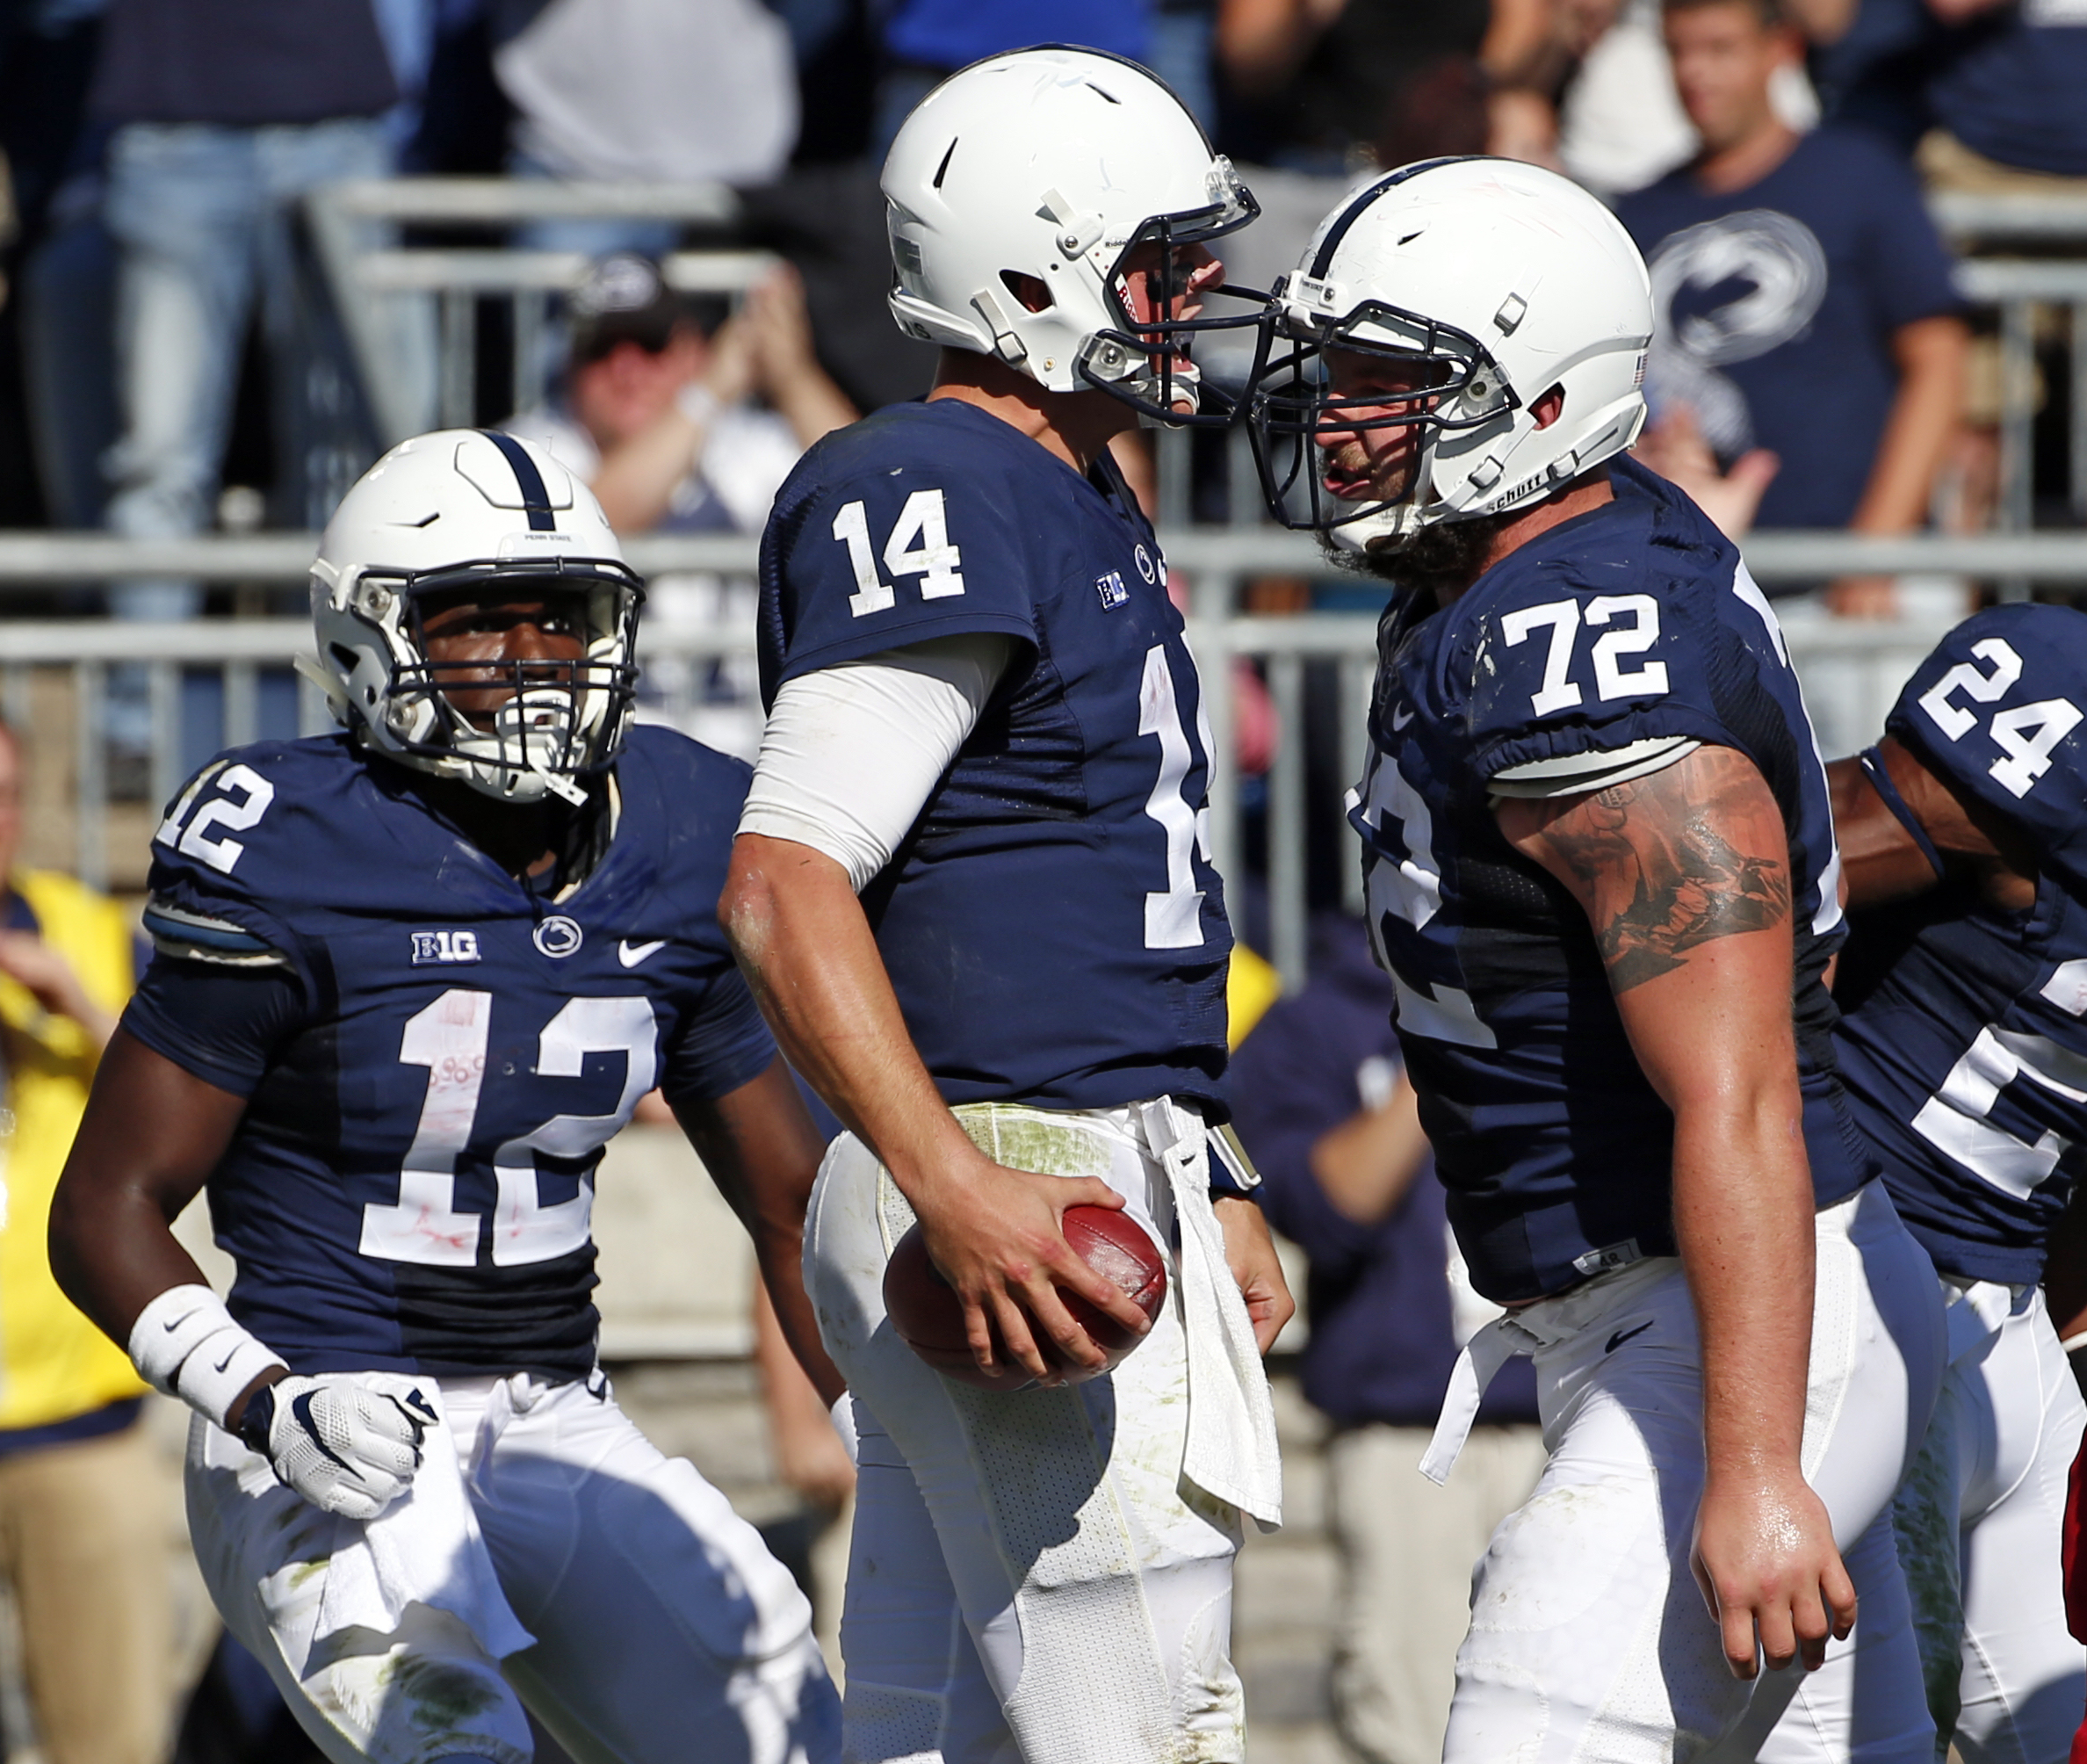 Penn State quarterback Christian Hackenberg (14) celebrates with teammates after scoring a touchdown on a 5-yard scramble up the middle in the second half of an NCAA college football game against Indiana in State College, Pa., Saturday, Oct. 10, 2015. (AP